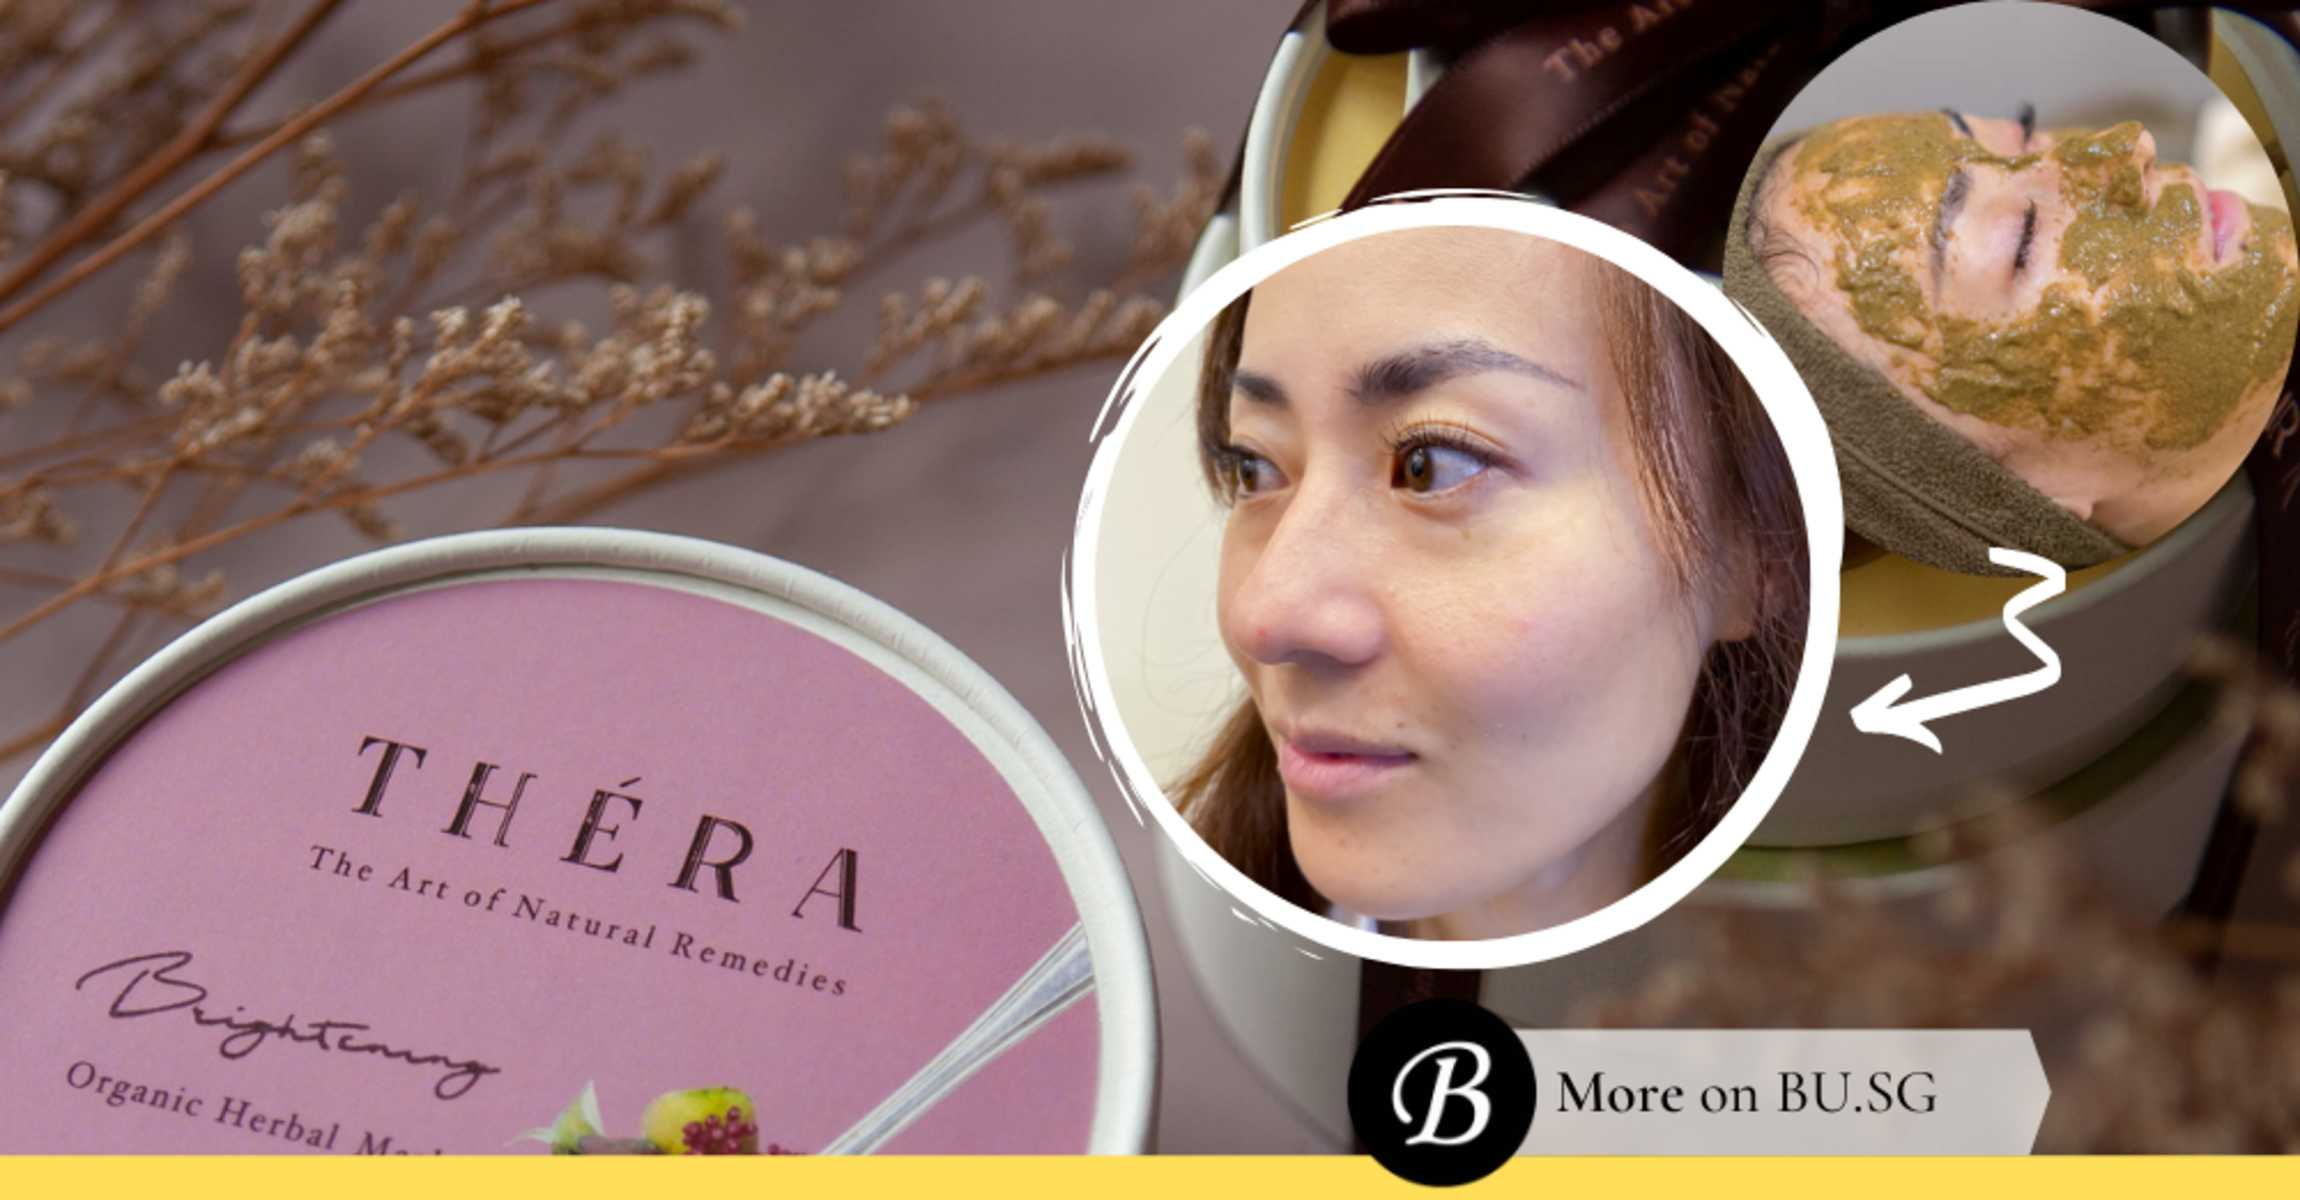 Thera Facial is the First 100% Natural Facial in Singapore That Actually Works. 10 Customers Share Their Experiences with Thera.